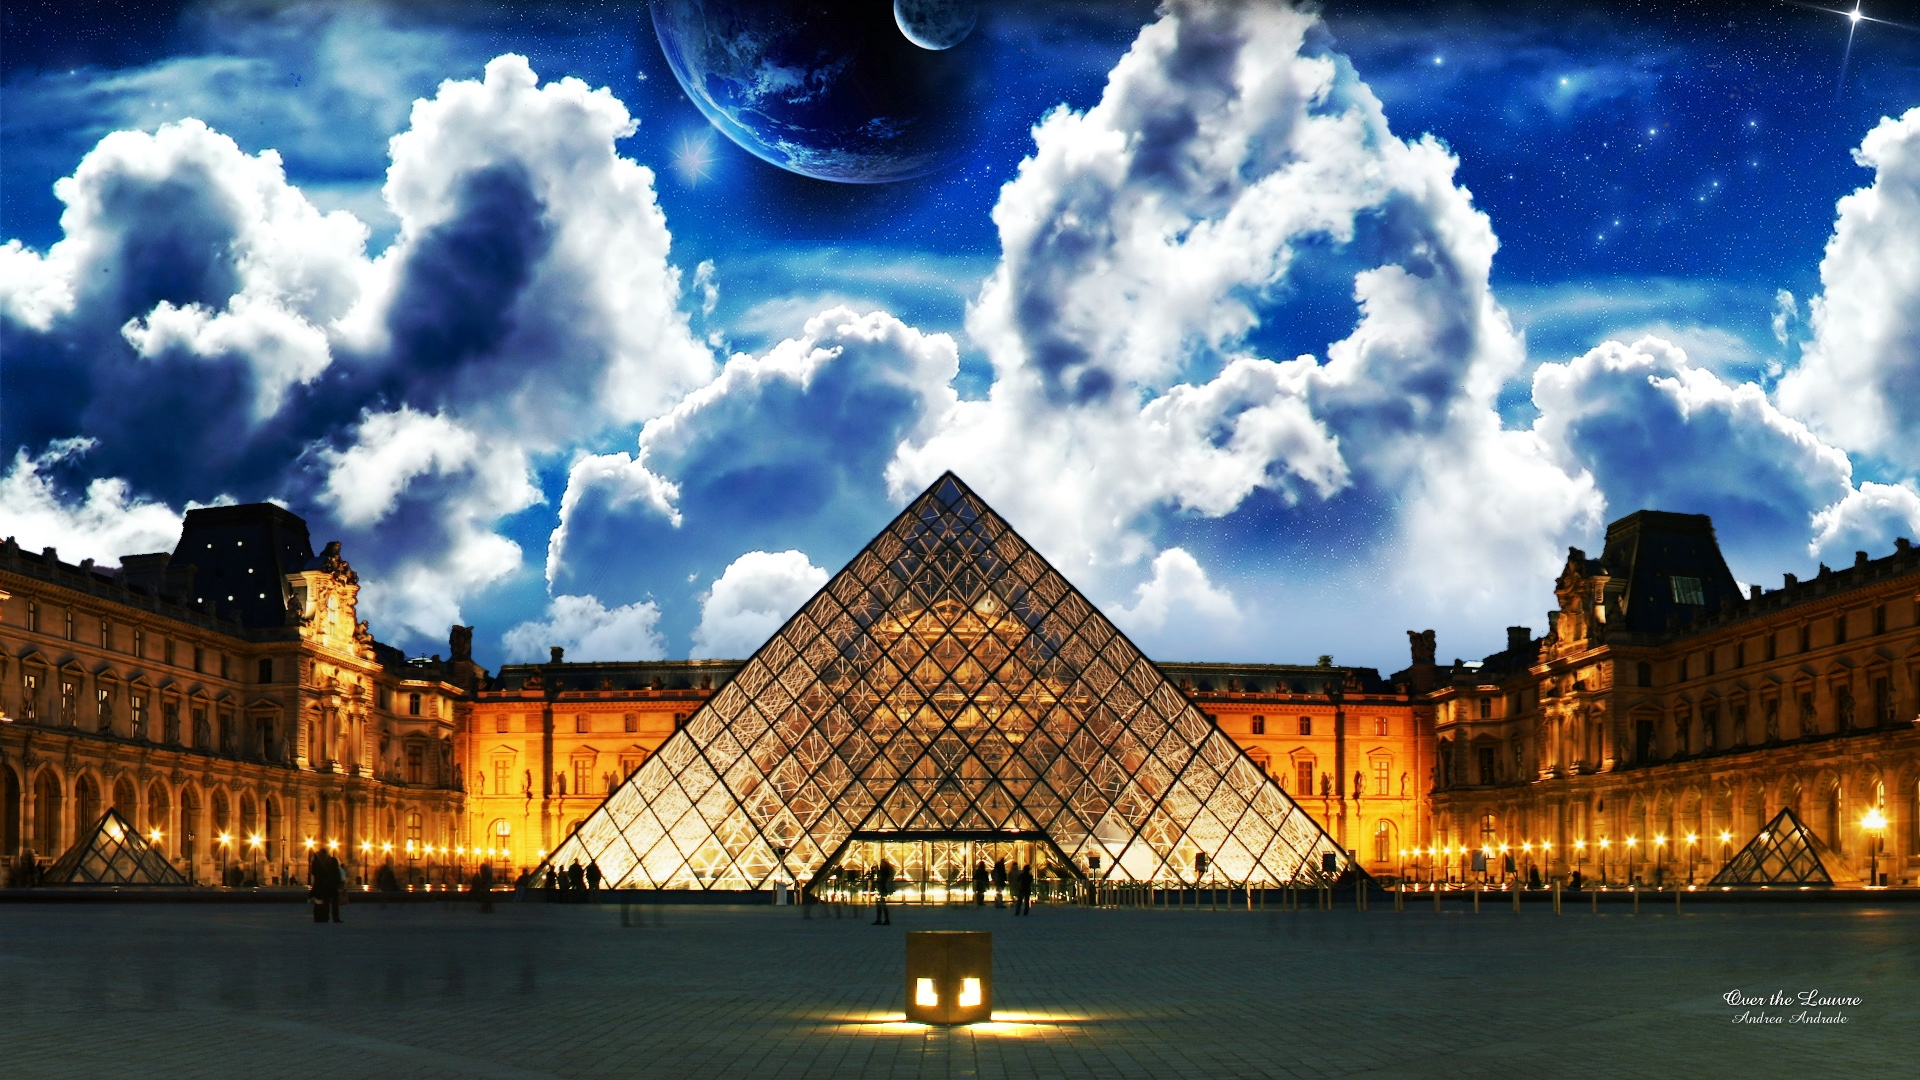 Best 46 Louvre Wallpaper on HipWallpaper Louvre Wallpaper 1920x1080